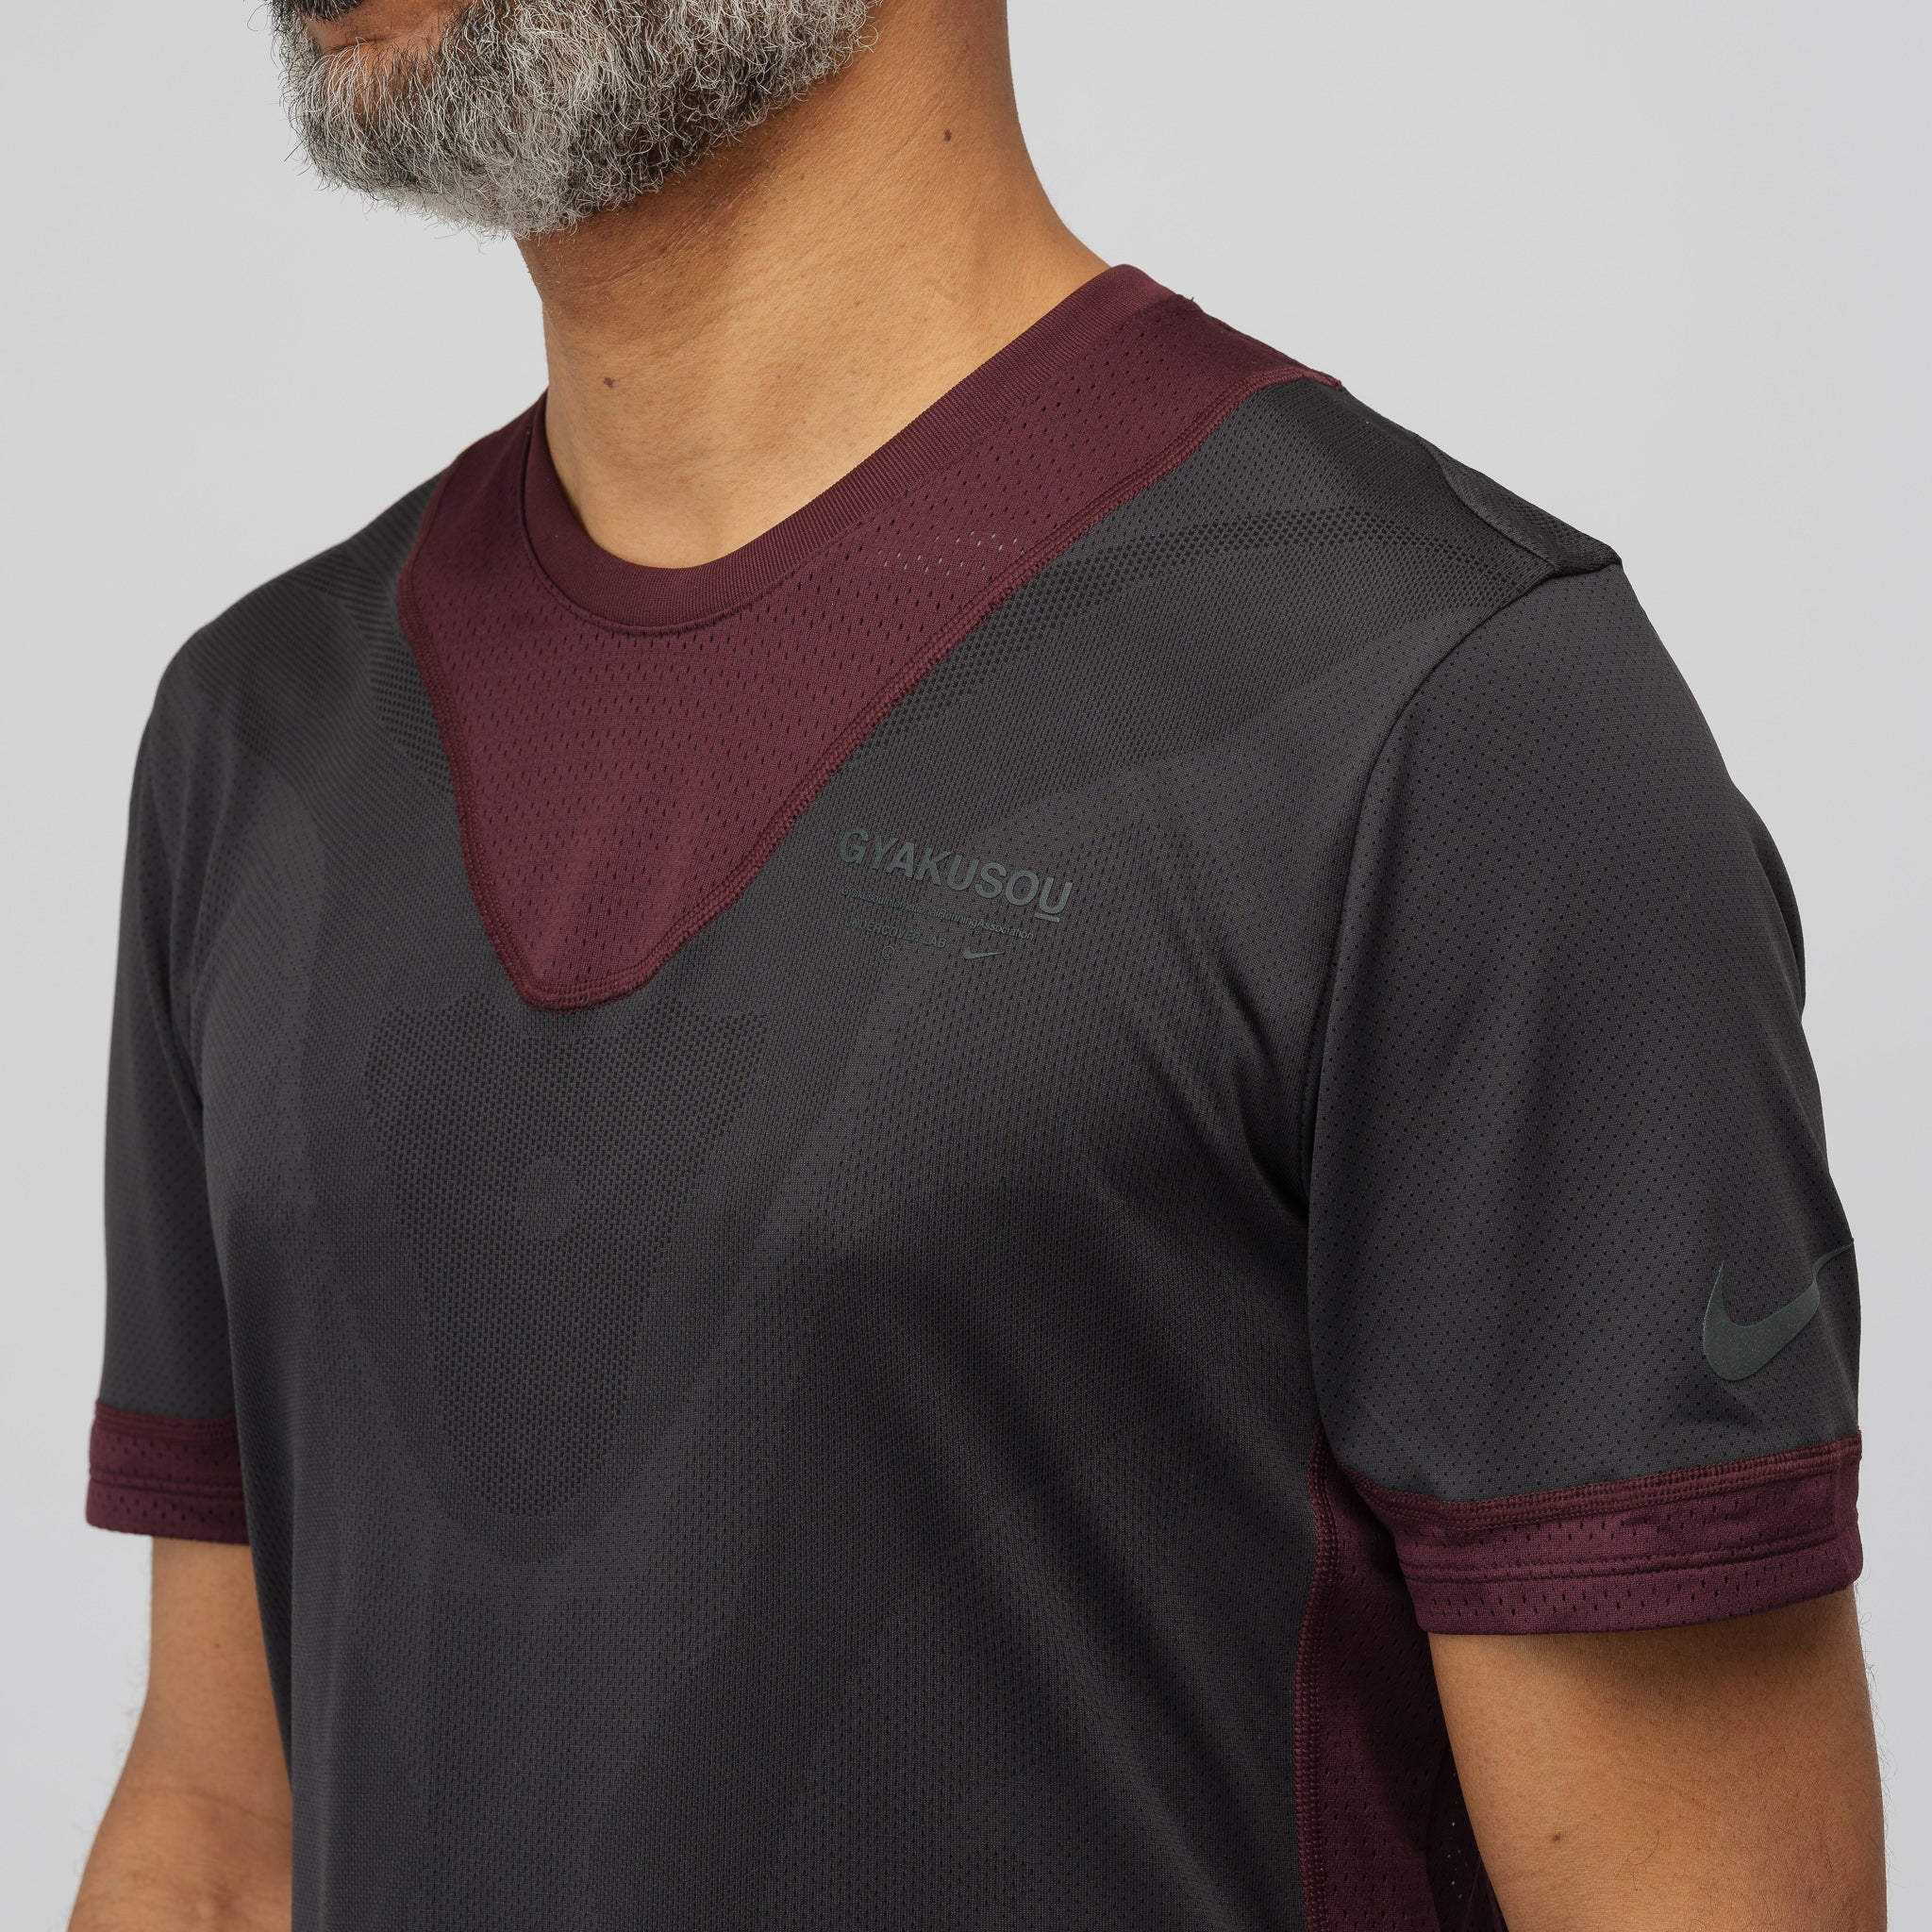 Gyakusou Short Sleeve Top in Deep Burgundy